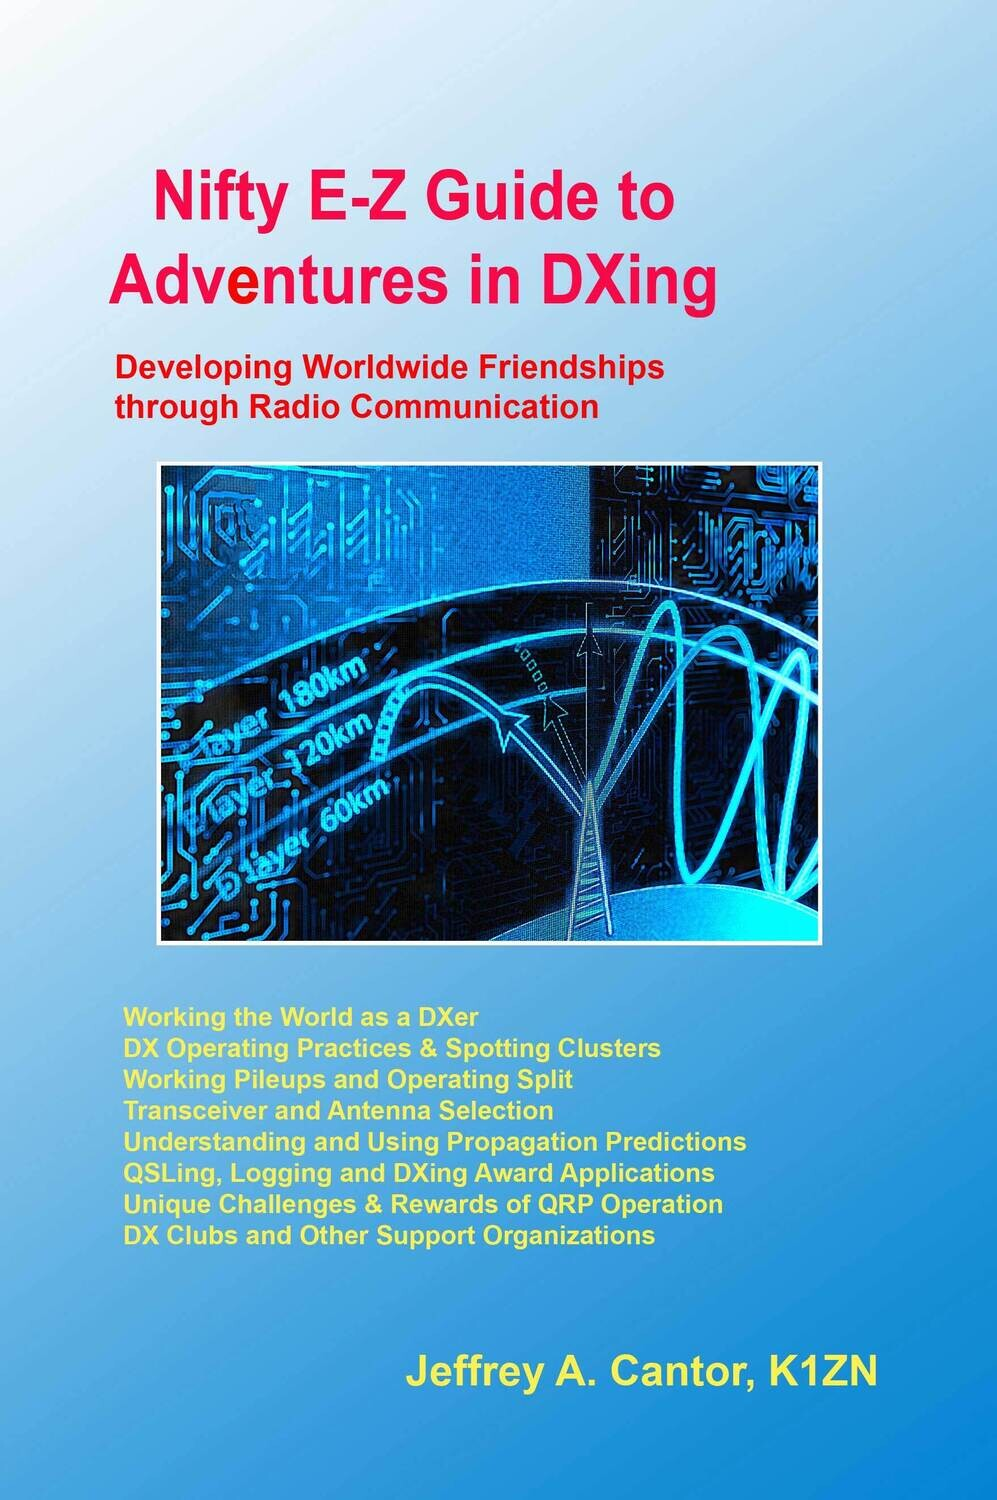 NIFTY E-Z GUIDE to ADVENTURE IN DXing